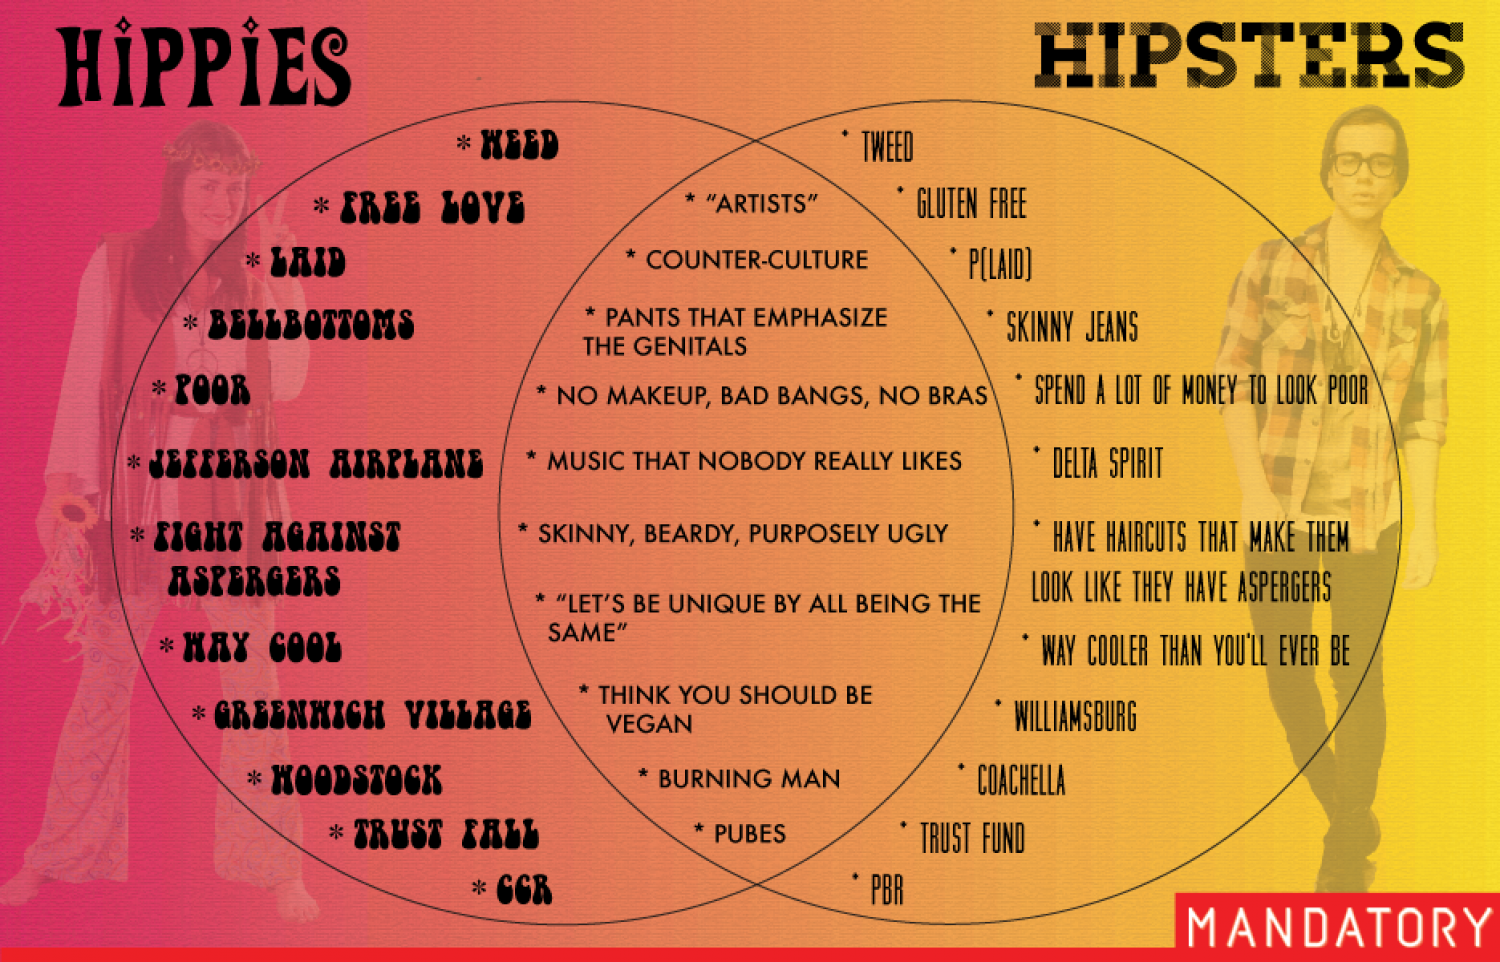 Hippies vs. Hipsters: A Venn Diagram Infographic